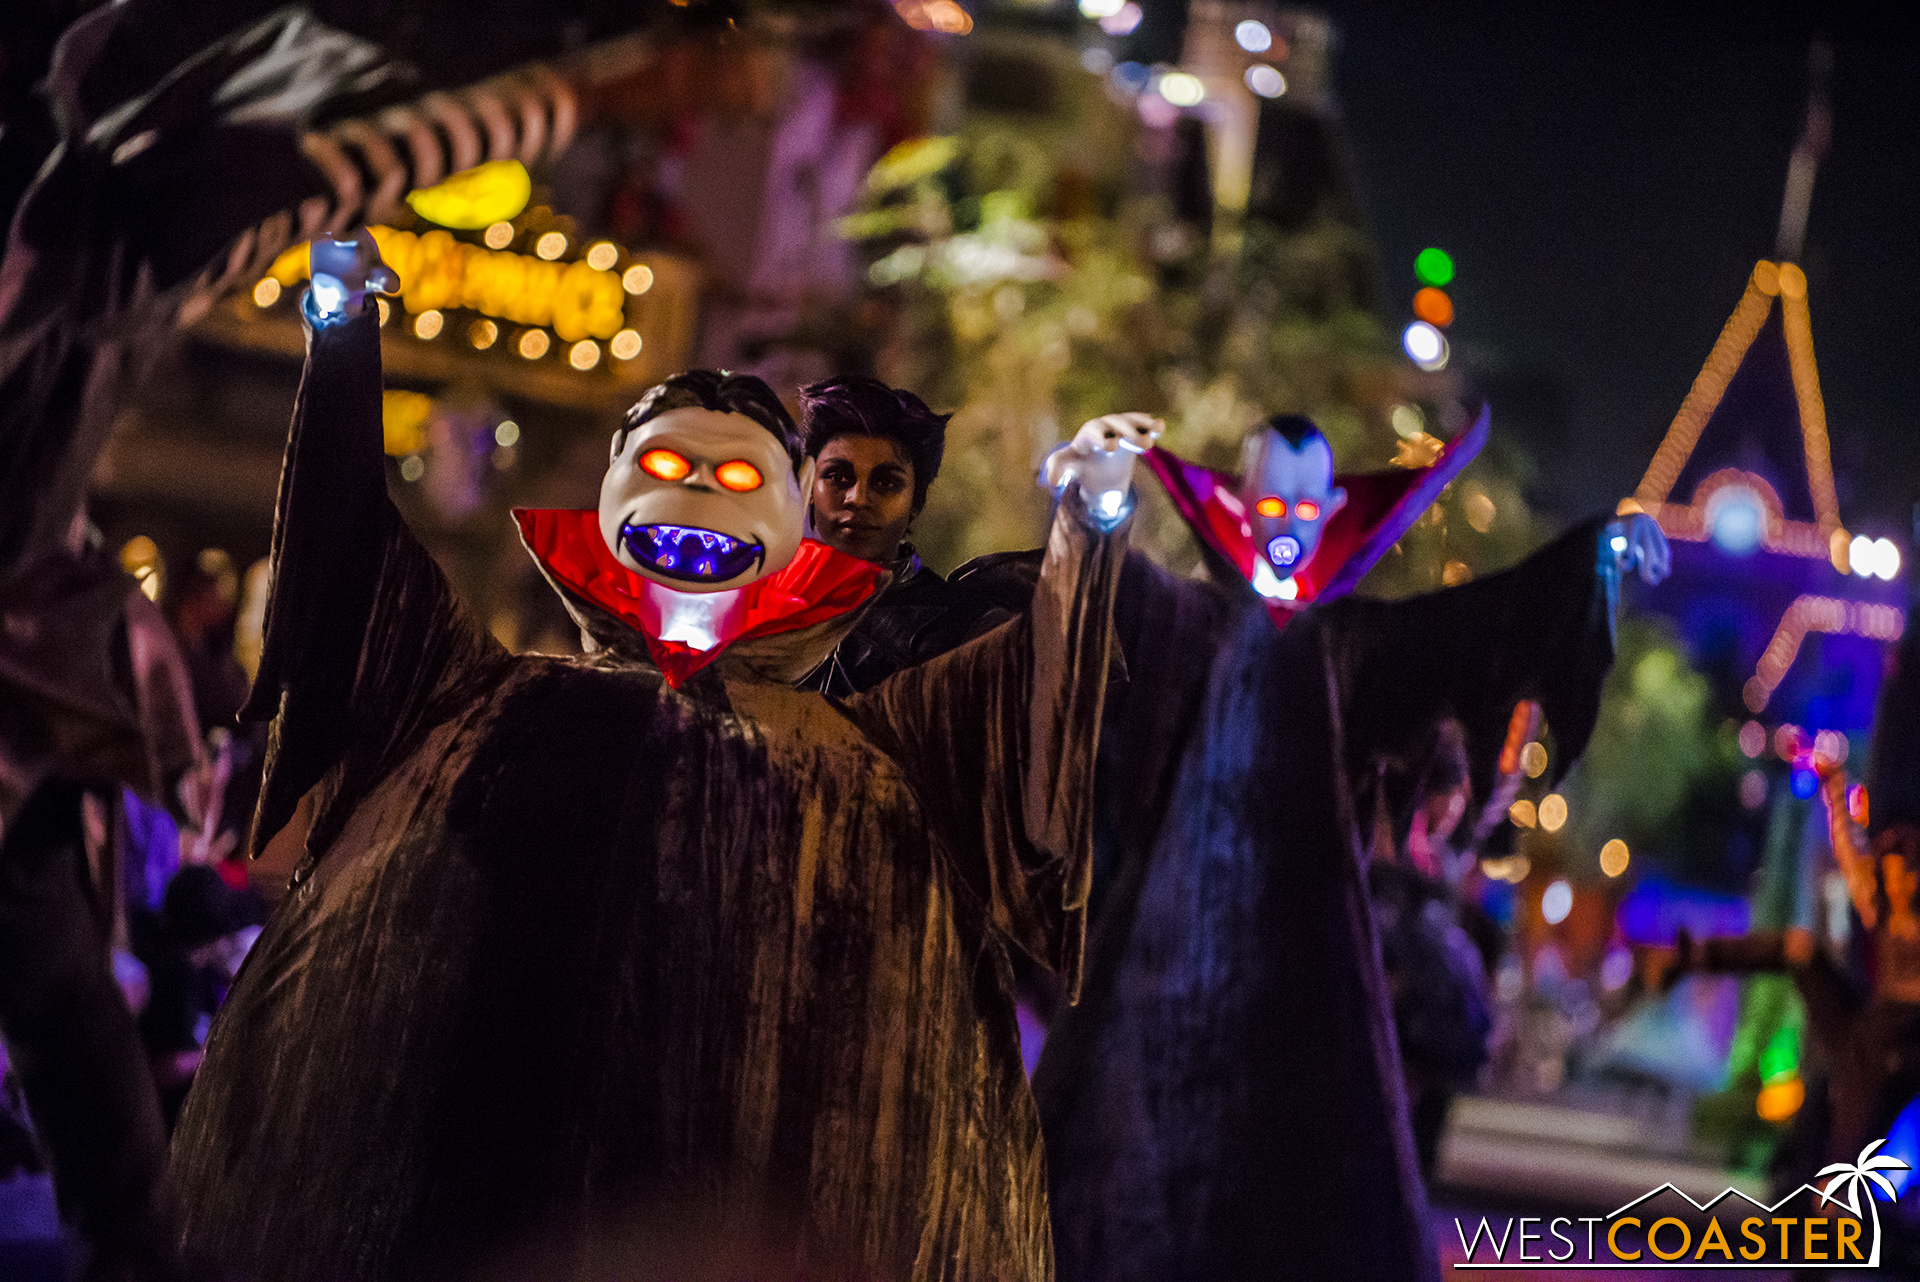 With a  Nightmare Before Christmas  flair, the start of the parade has vampires and goblins.